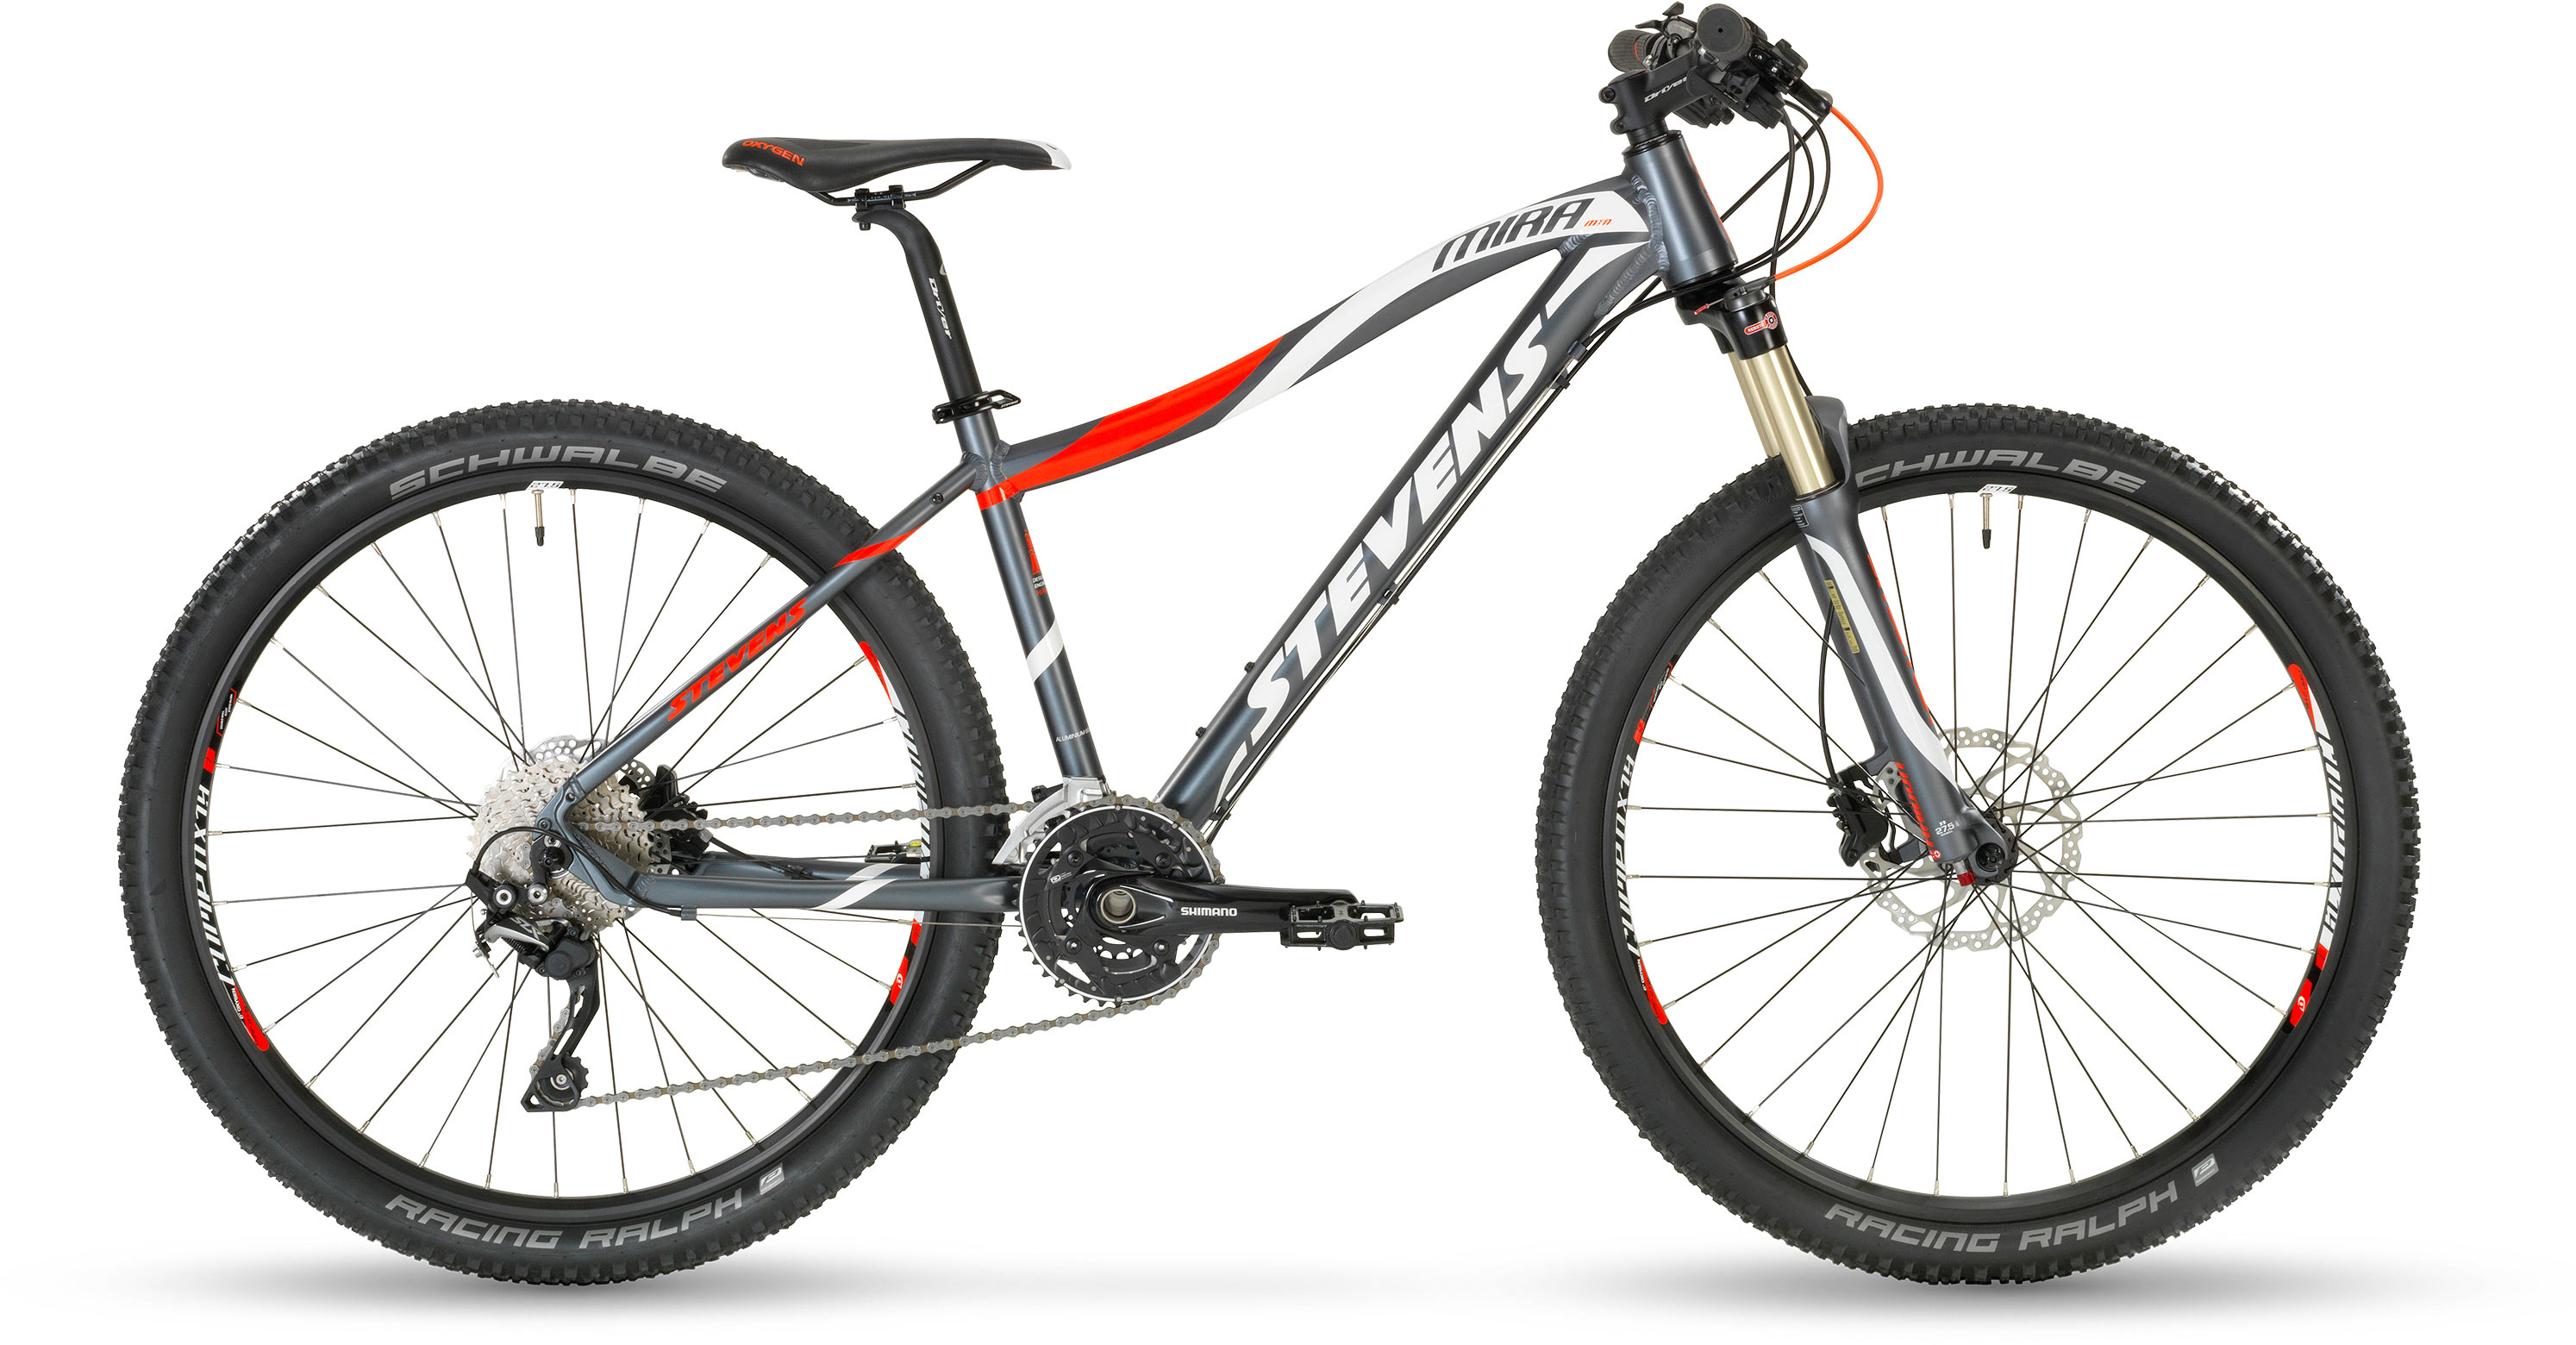 Bicycle Univega - a guarantee of European quality, individuality and reliability